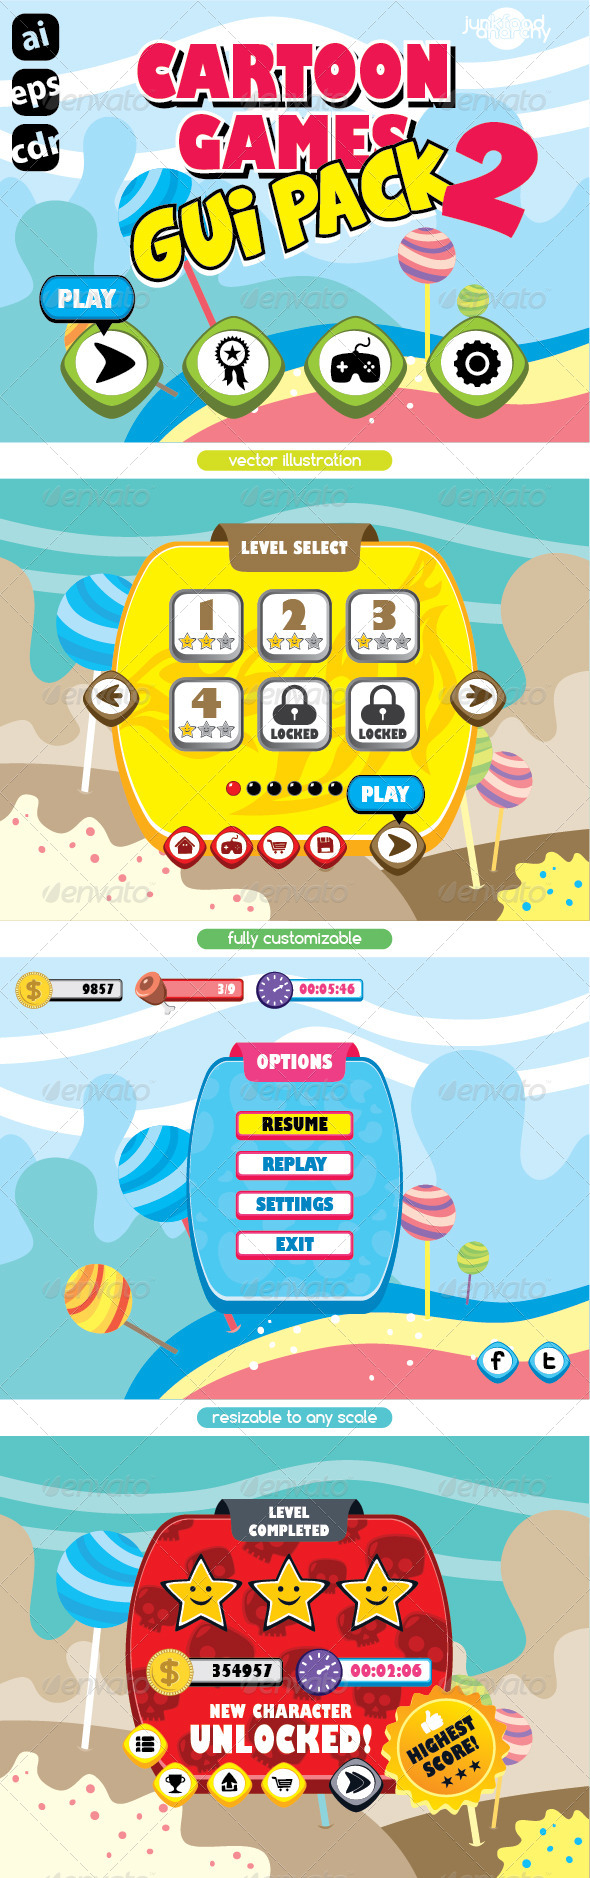 GraphicRiver Cartoon Games GUI Pack Vol 2 7467341